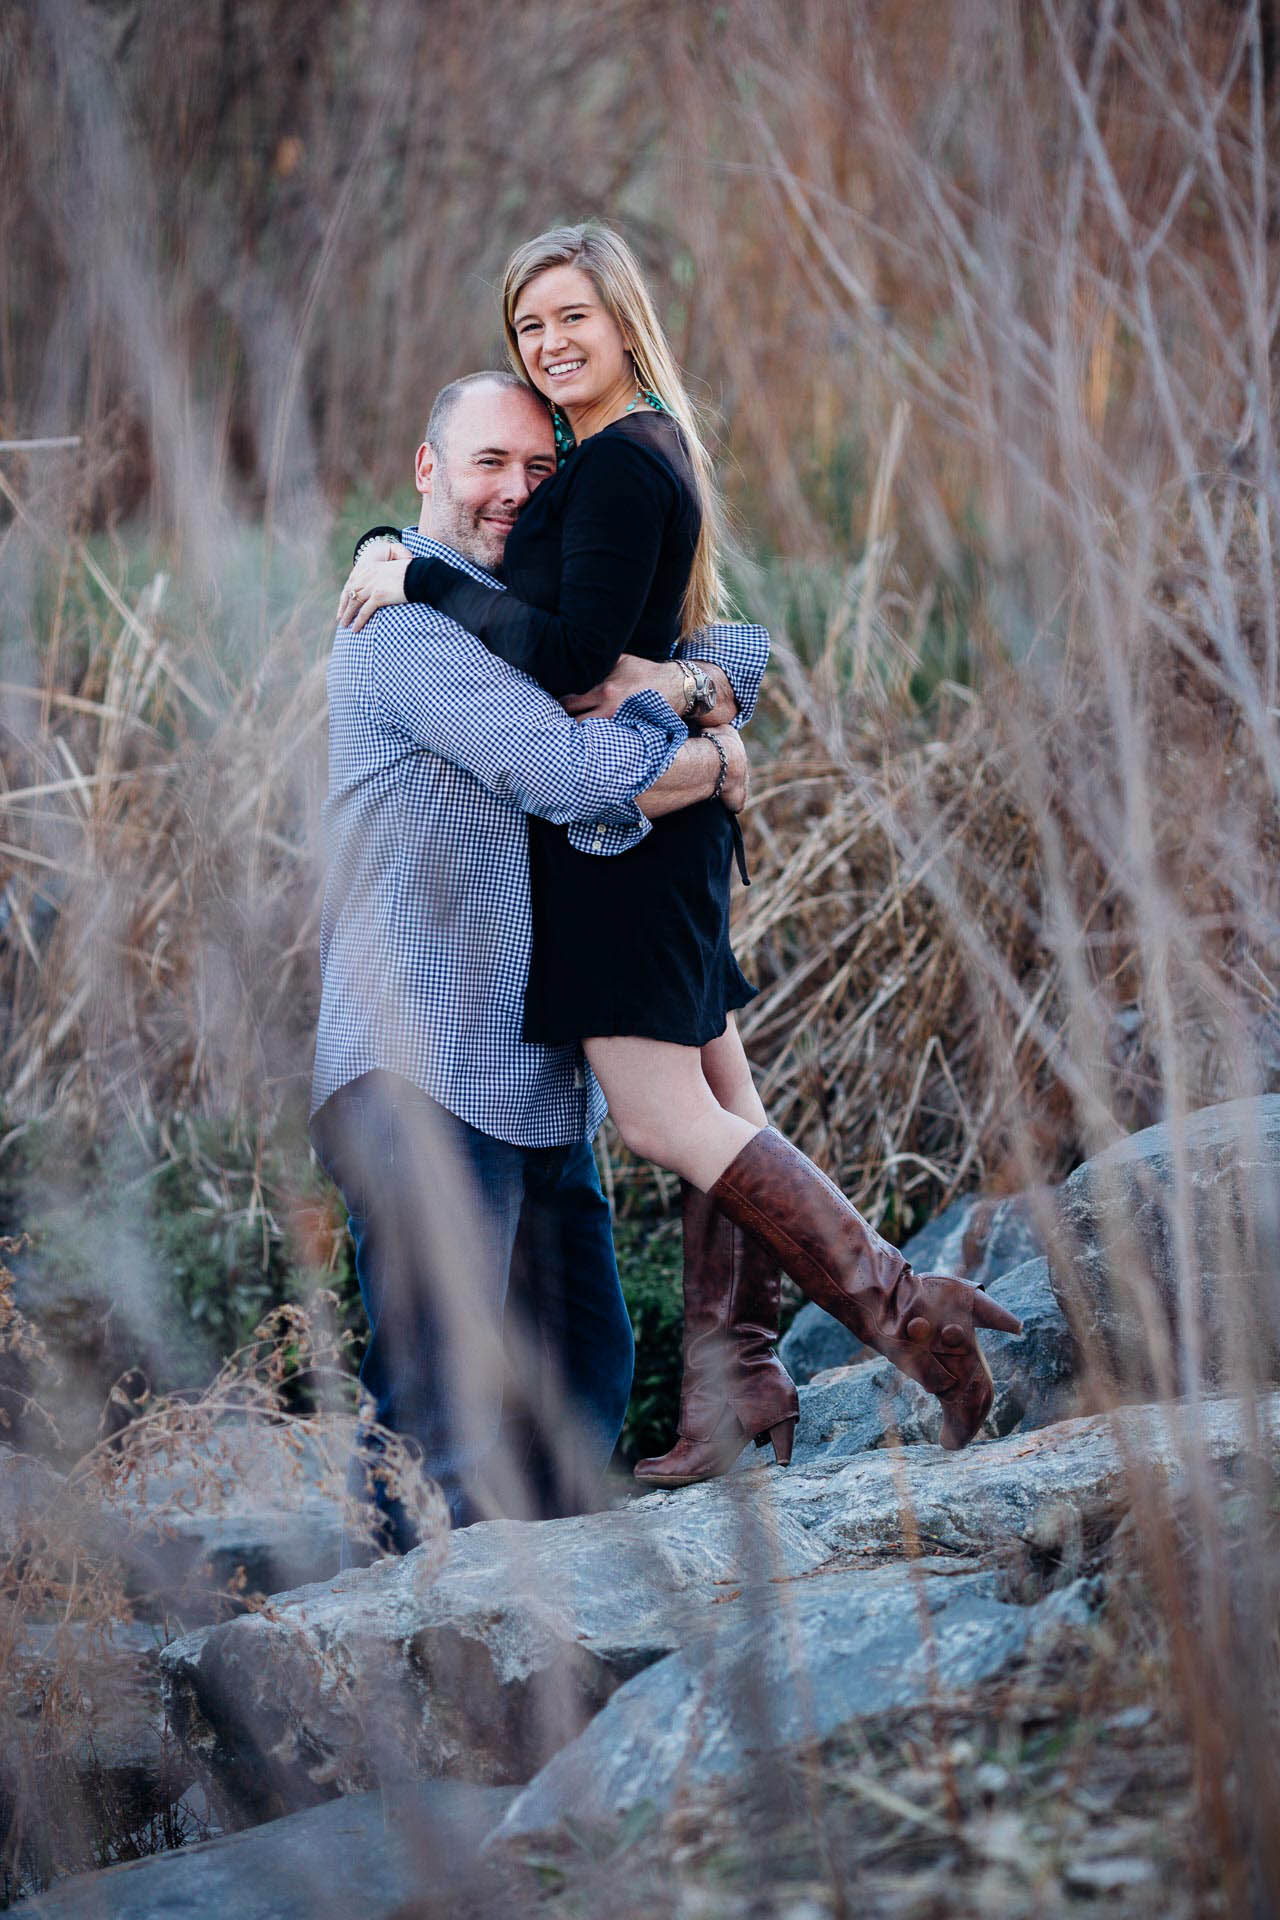 mark-elayna-highlands-ranch-wedding-engagement-photography-MarkAlayna-16